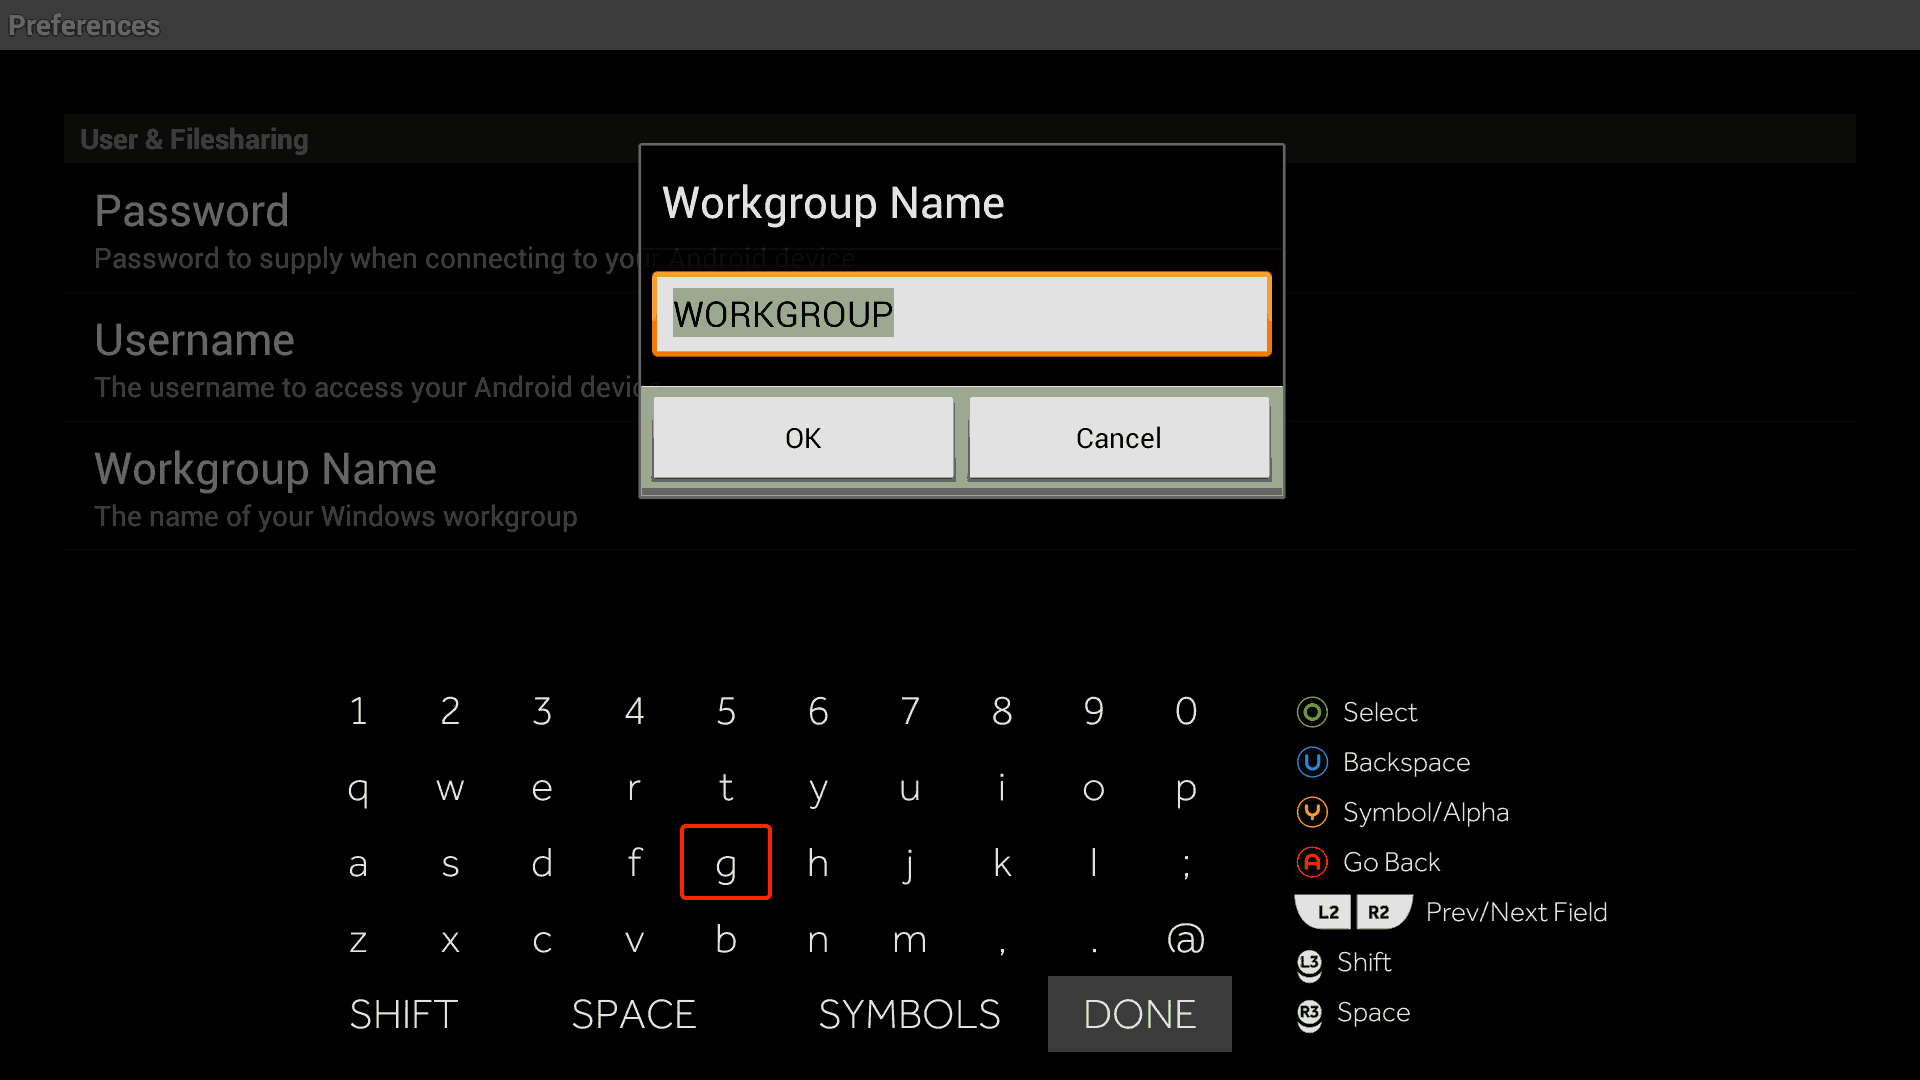 Samba Filesharing for Ouya - WorkGroup Name